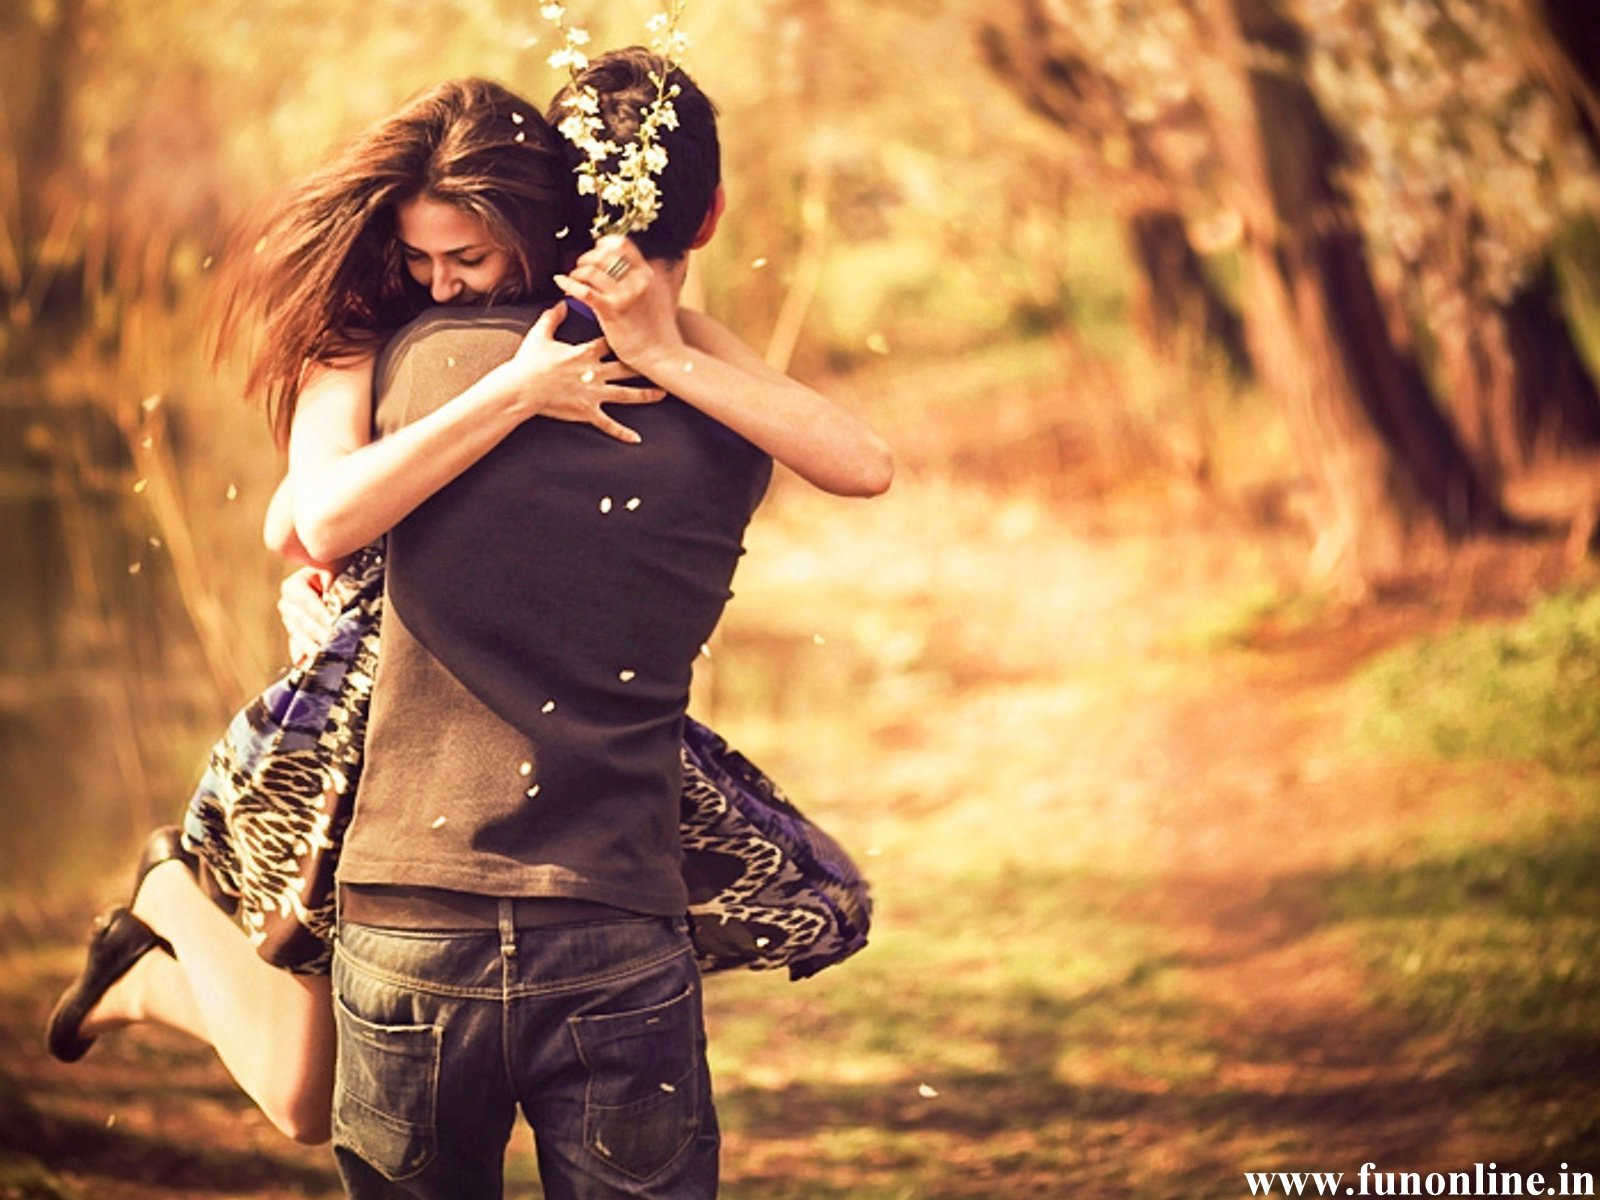 Hugs Comments, Images, Graphics, Pictures for Facebook